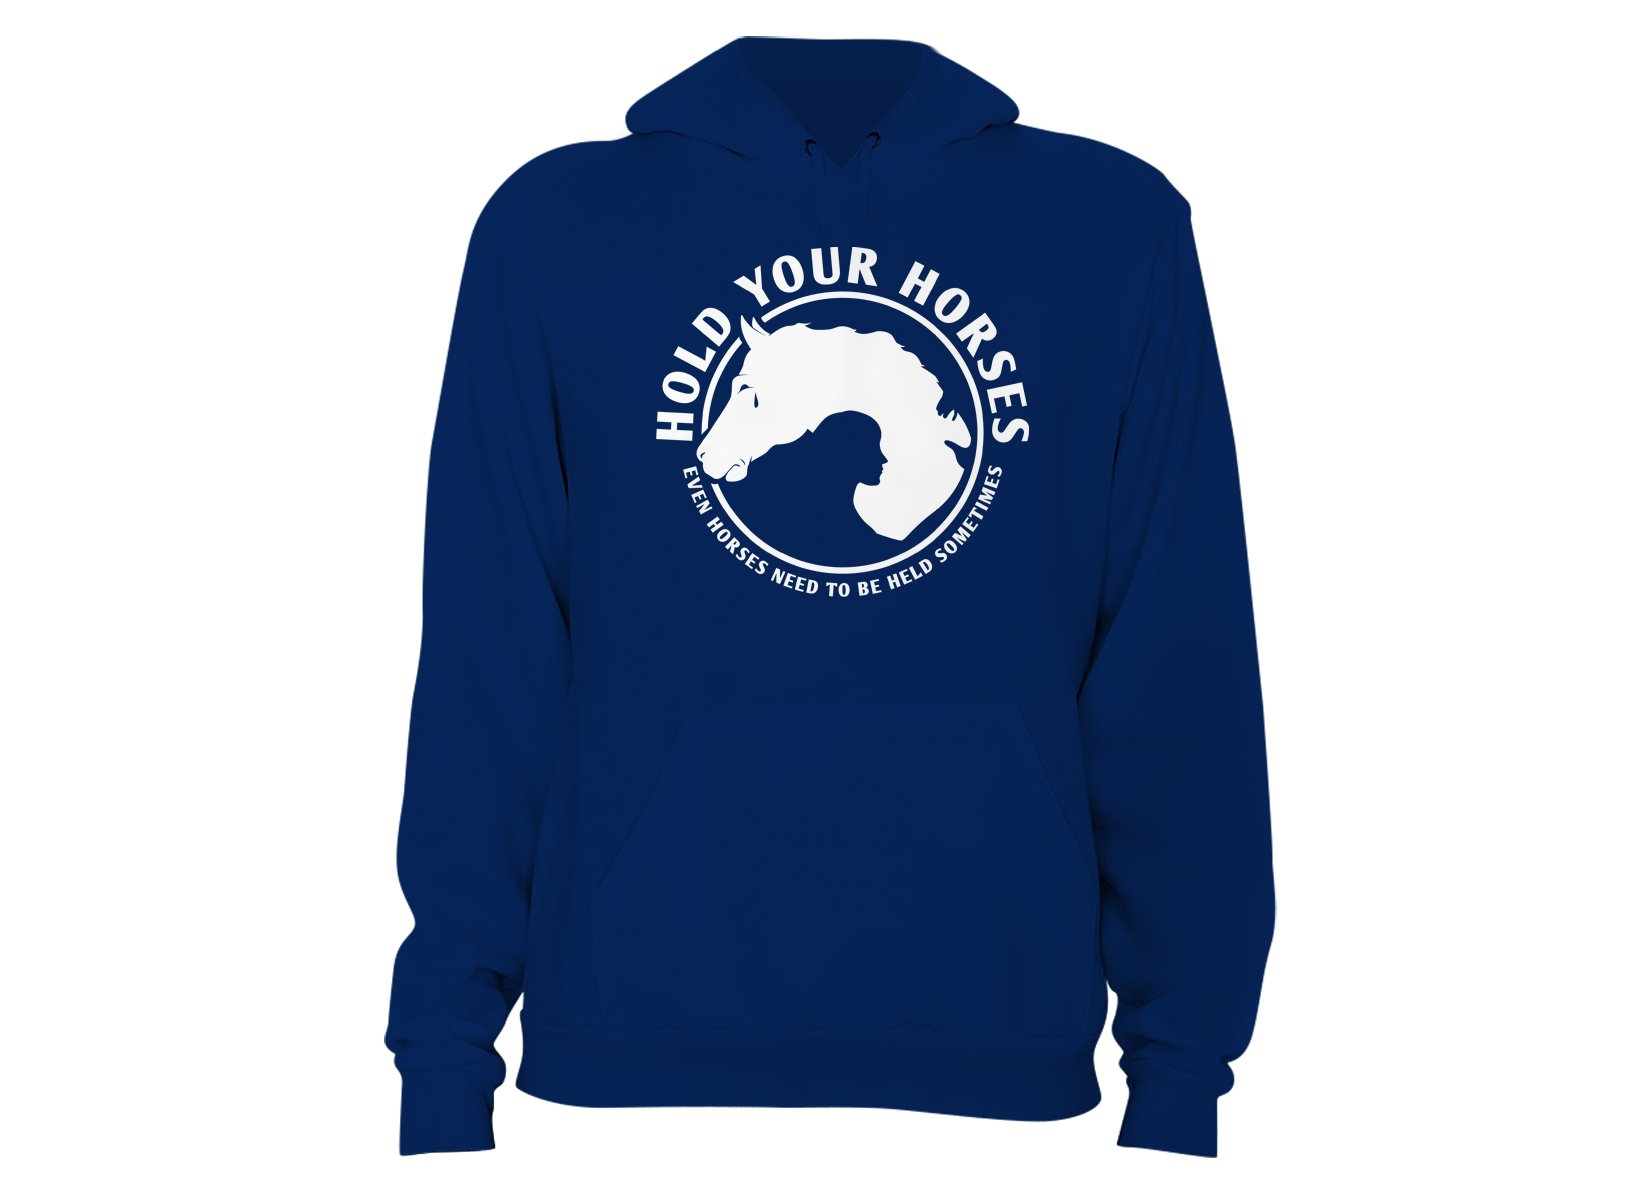 Hold Your Horses on Hoodie